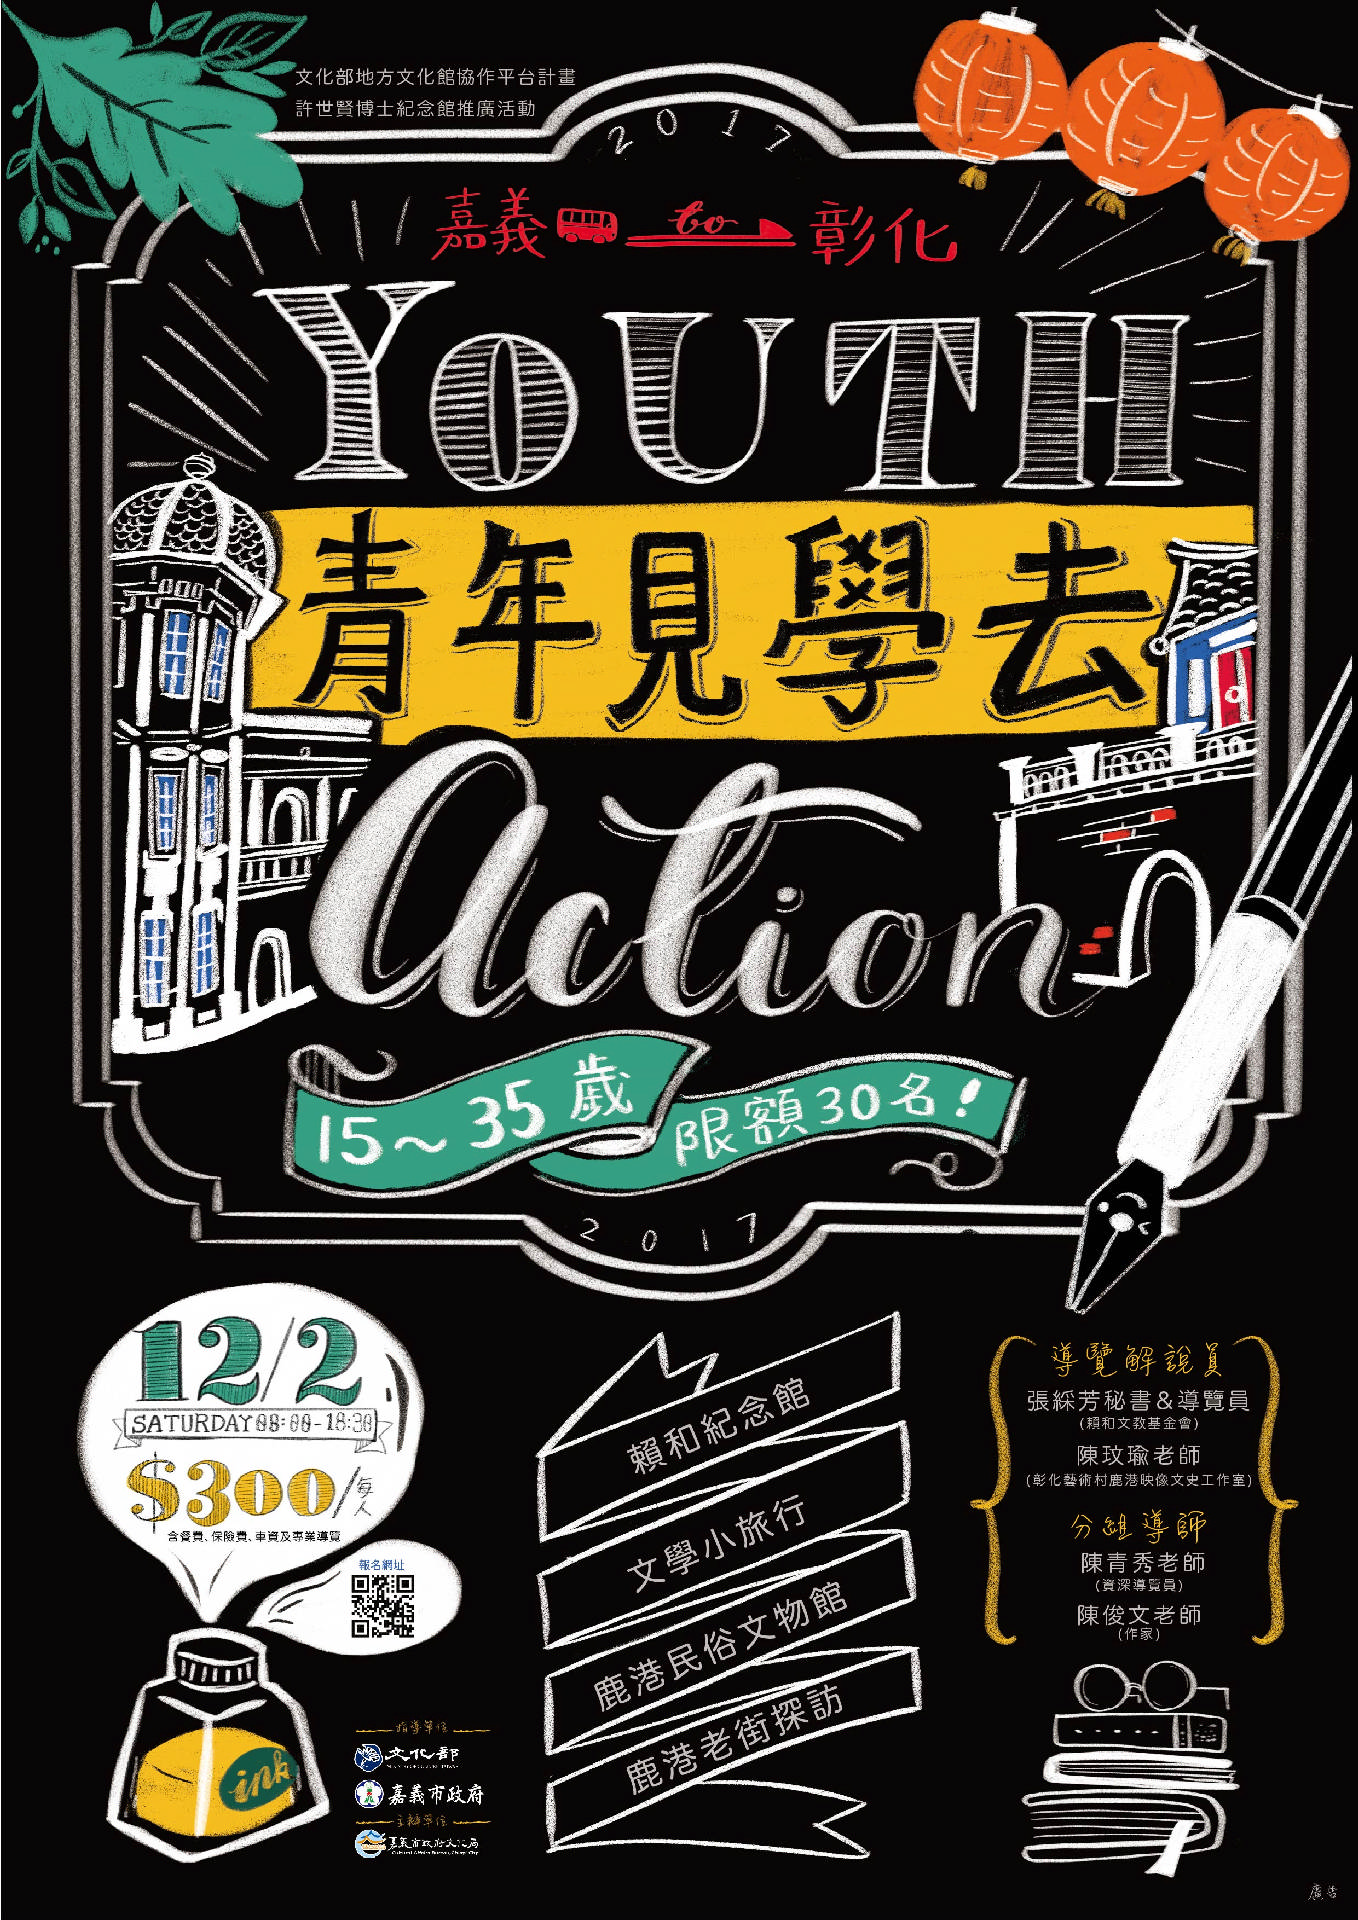 Youth Action 青年見學去